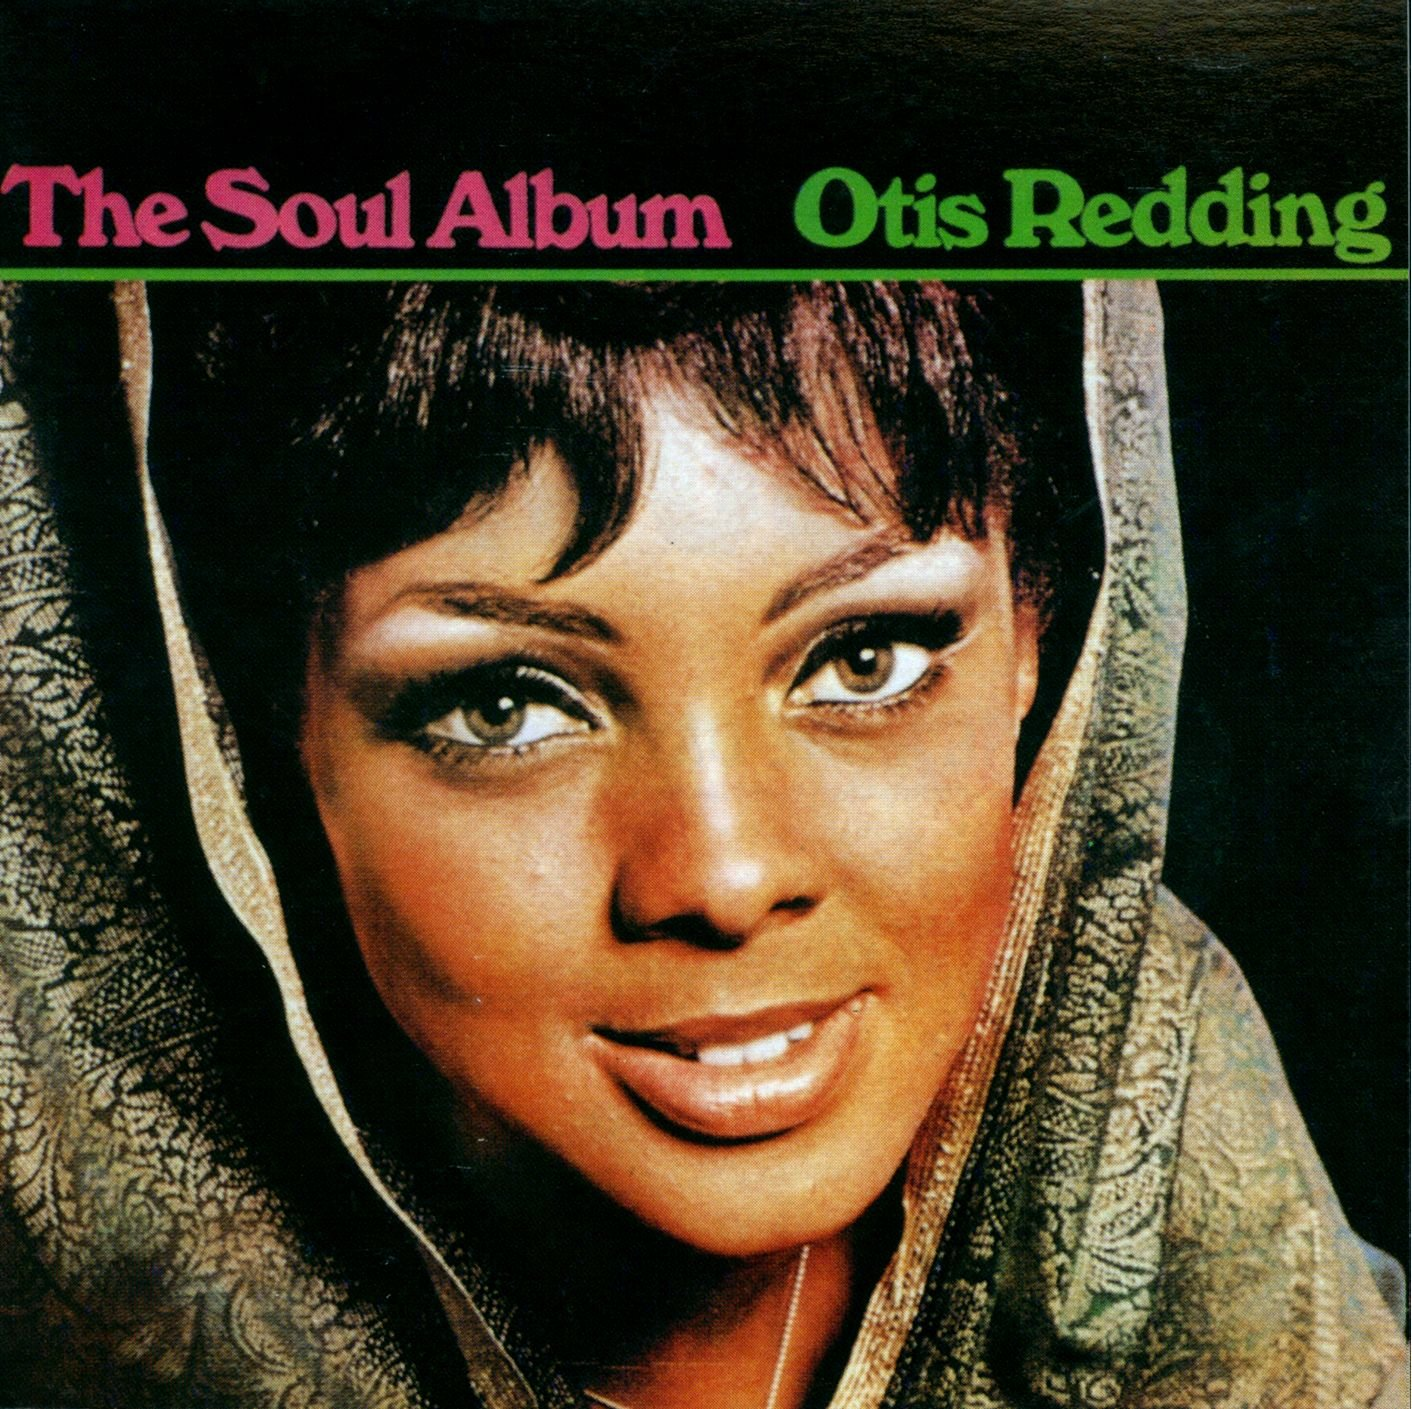 Otis Redding The Soul Album